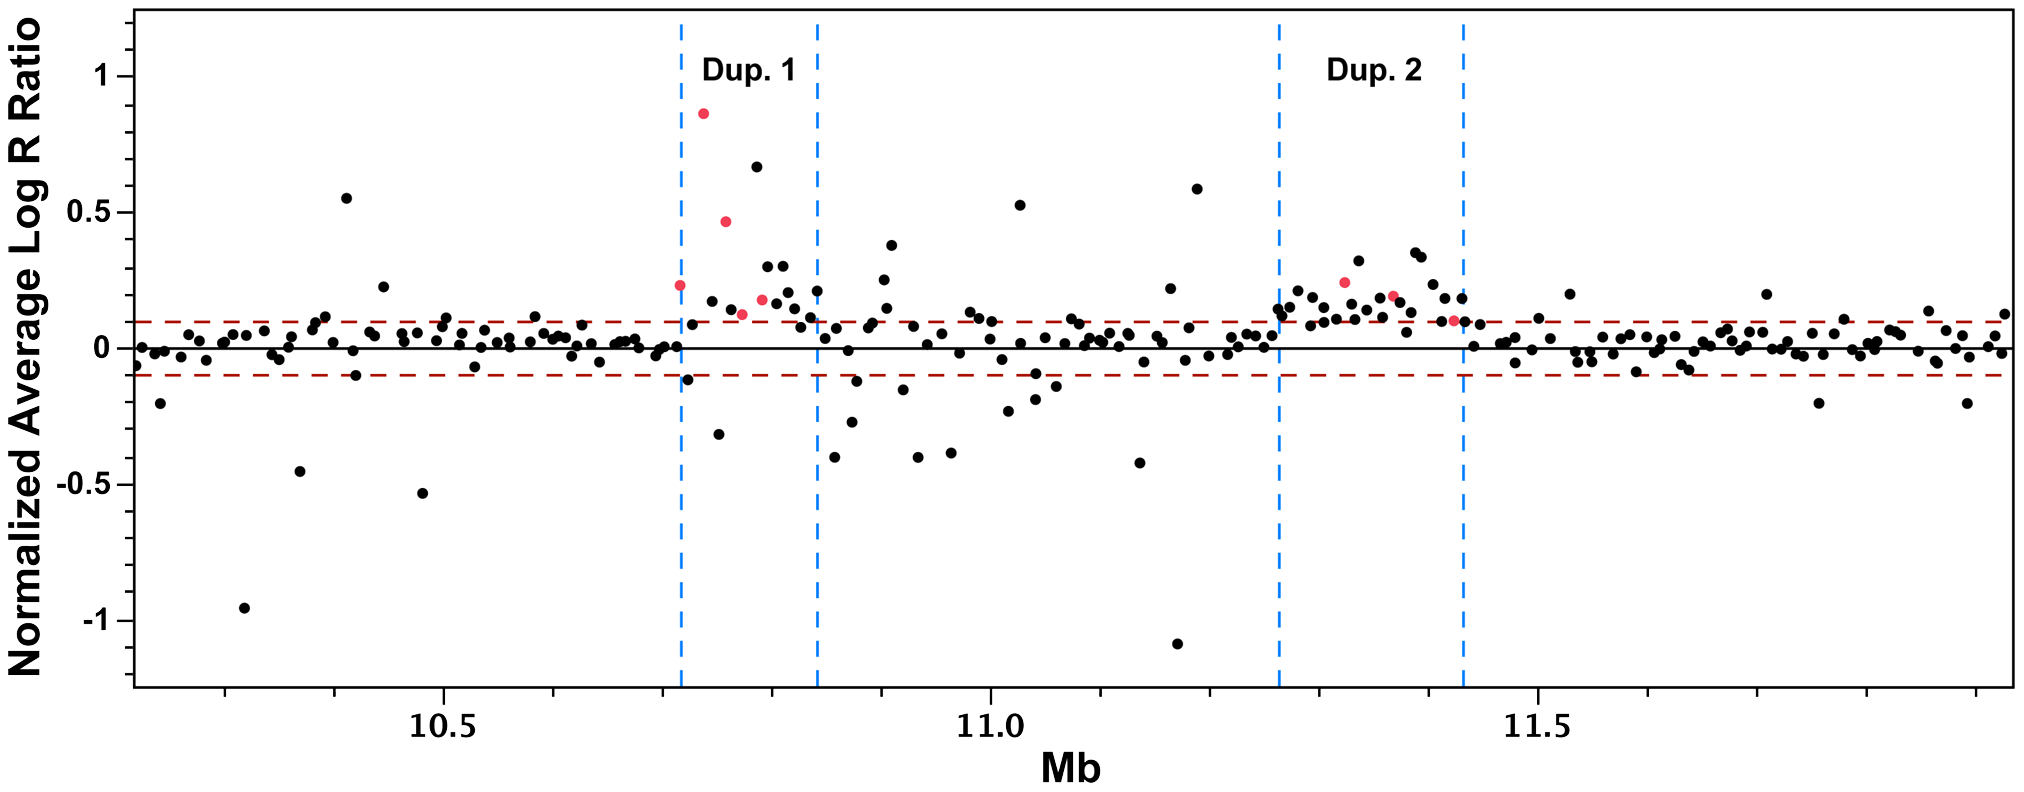 Group-wise analysis of Log R ratio SNP data for the detection of copy number variations.